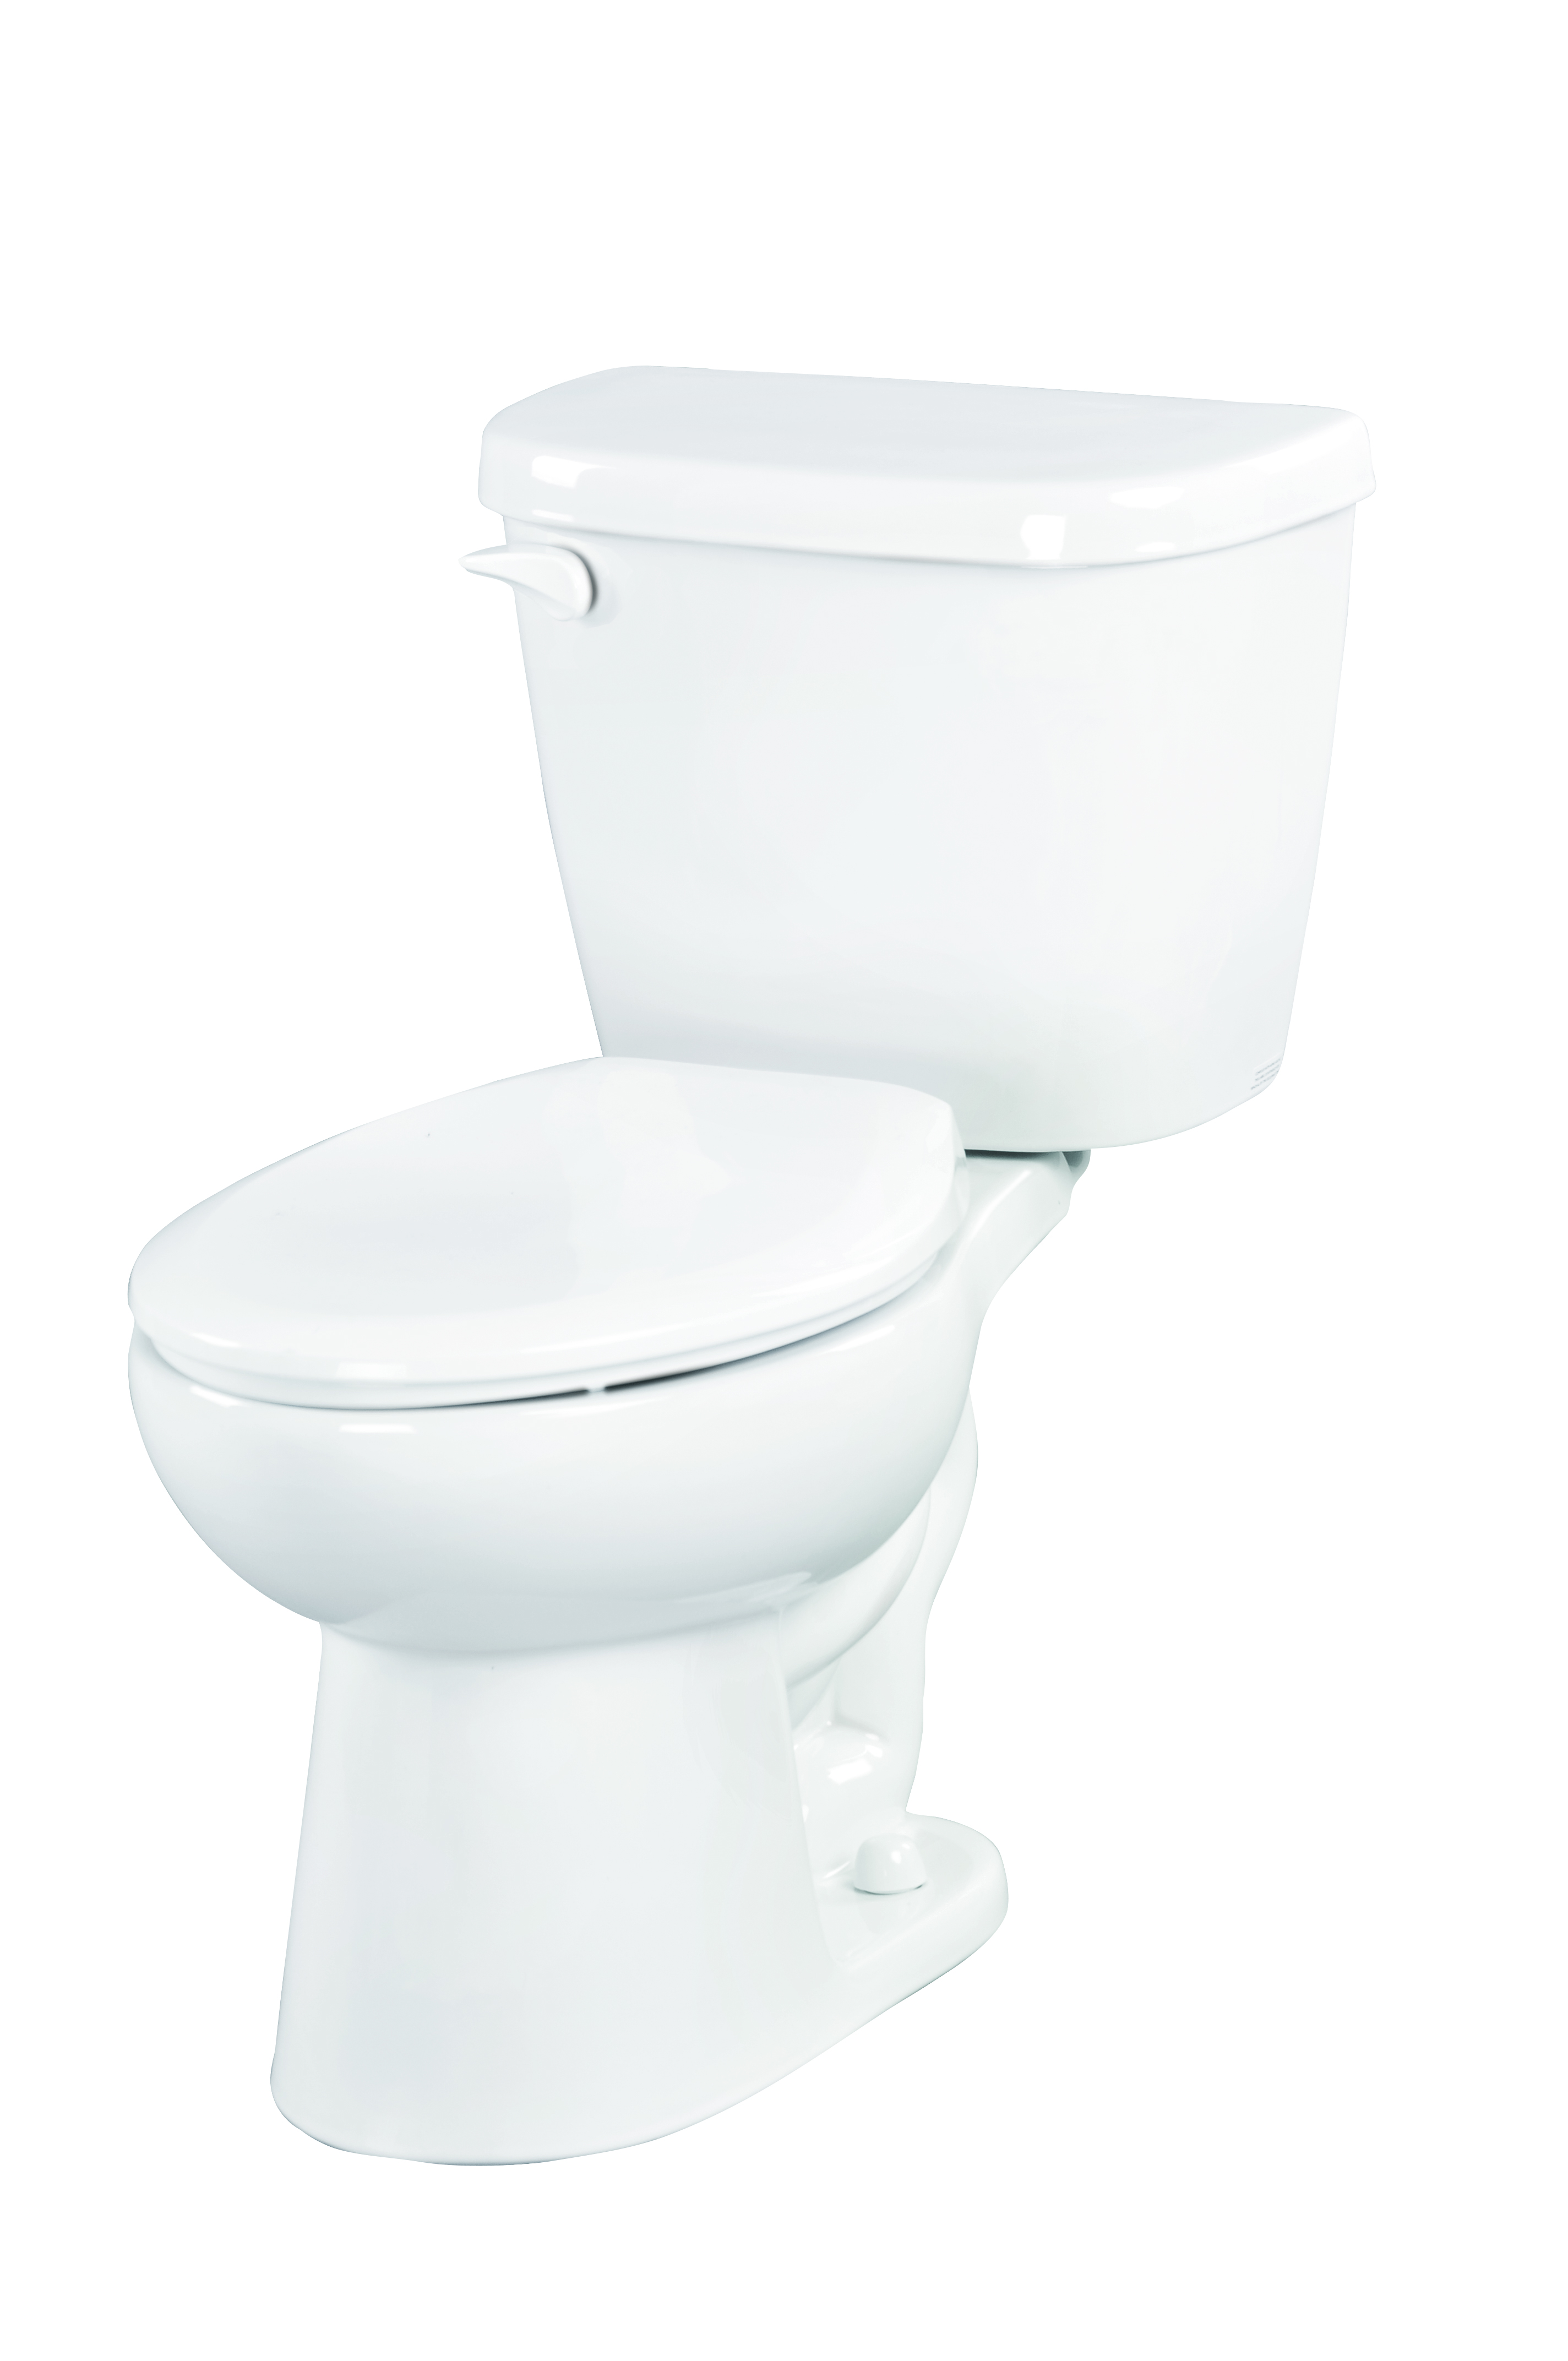 Amazing Gerber Avalanche Ada Toilet Image Collection - Water Faucet ...